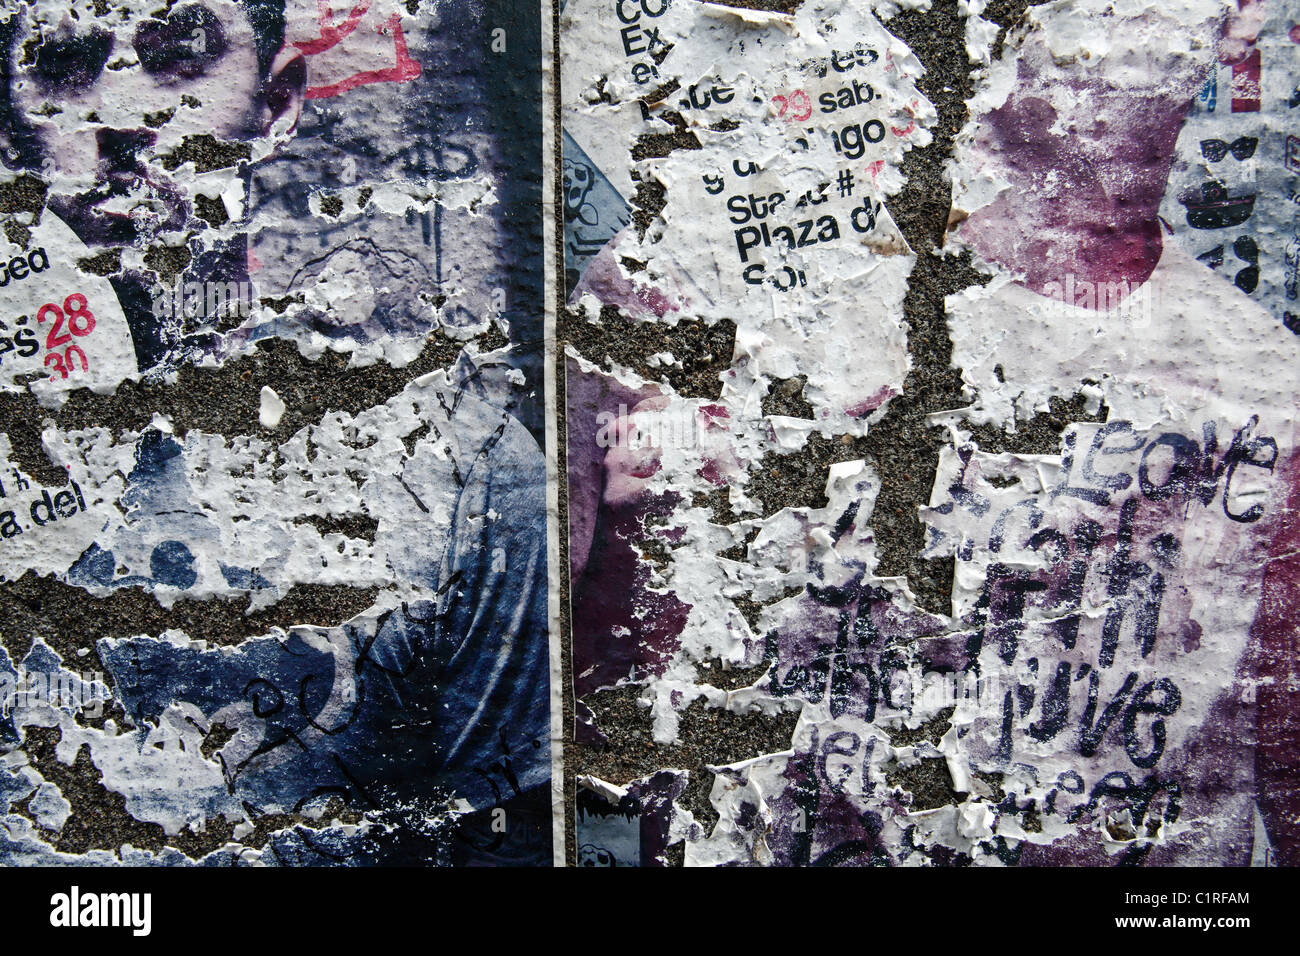 remnants of posters on a wall - Stock Image